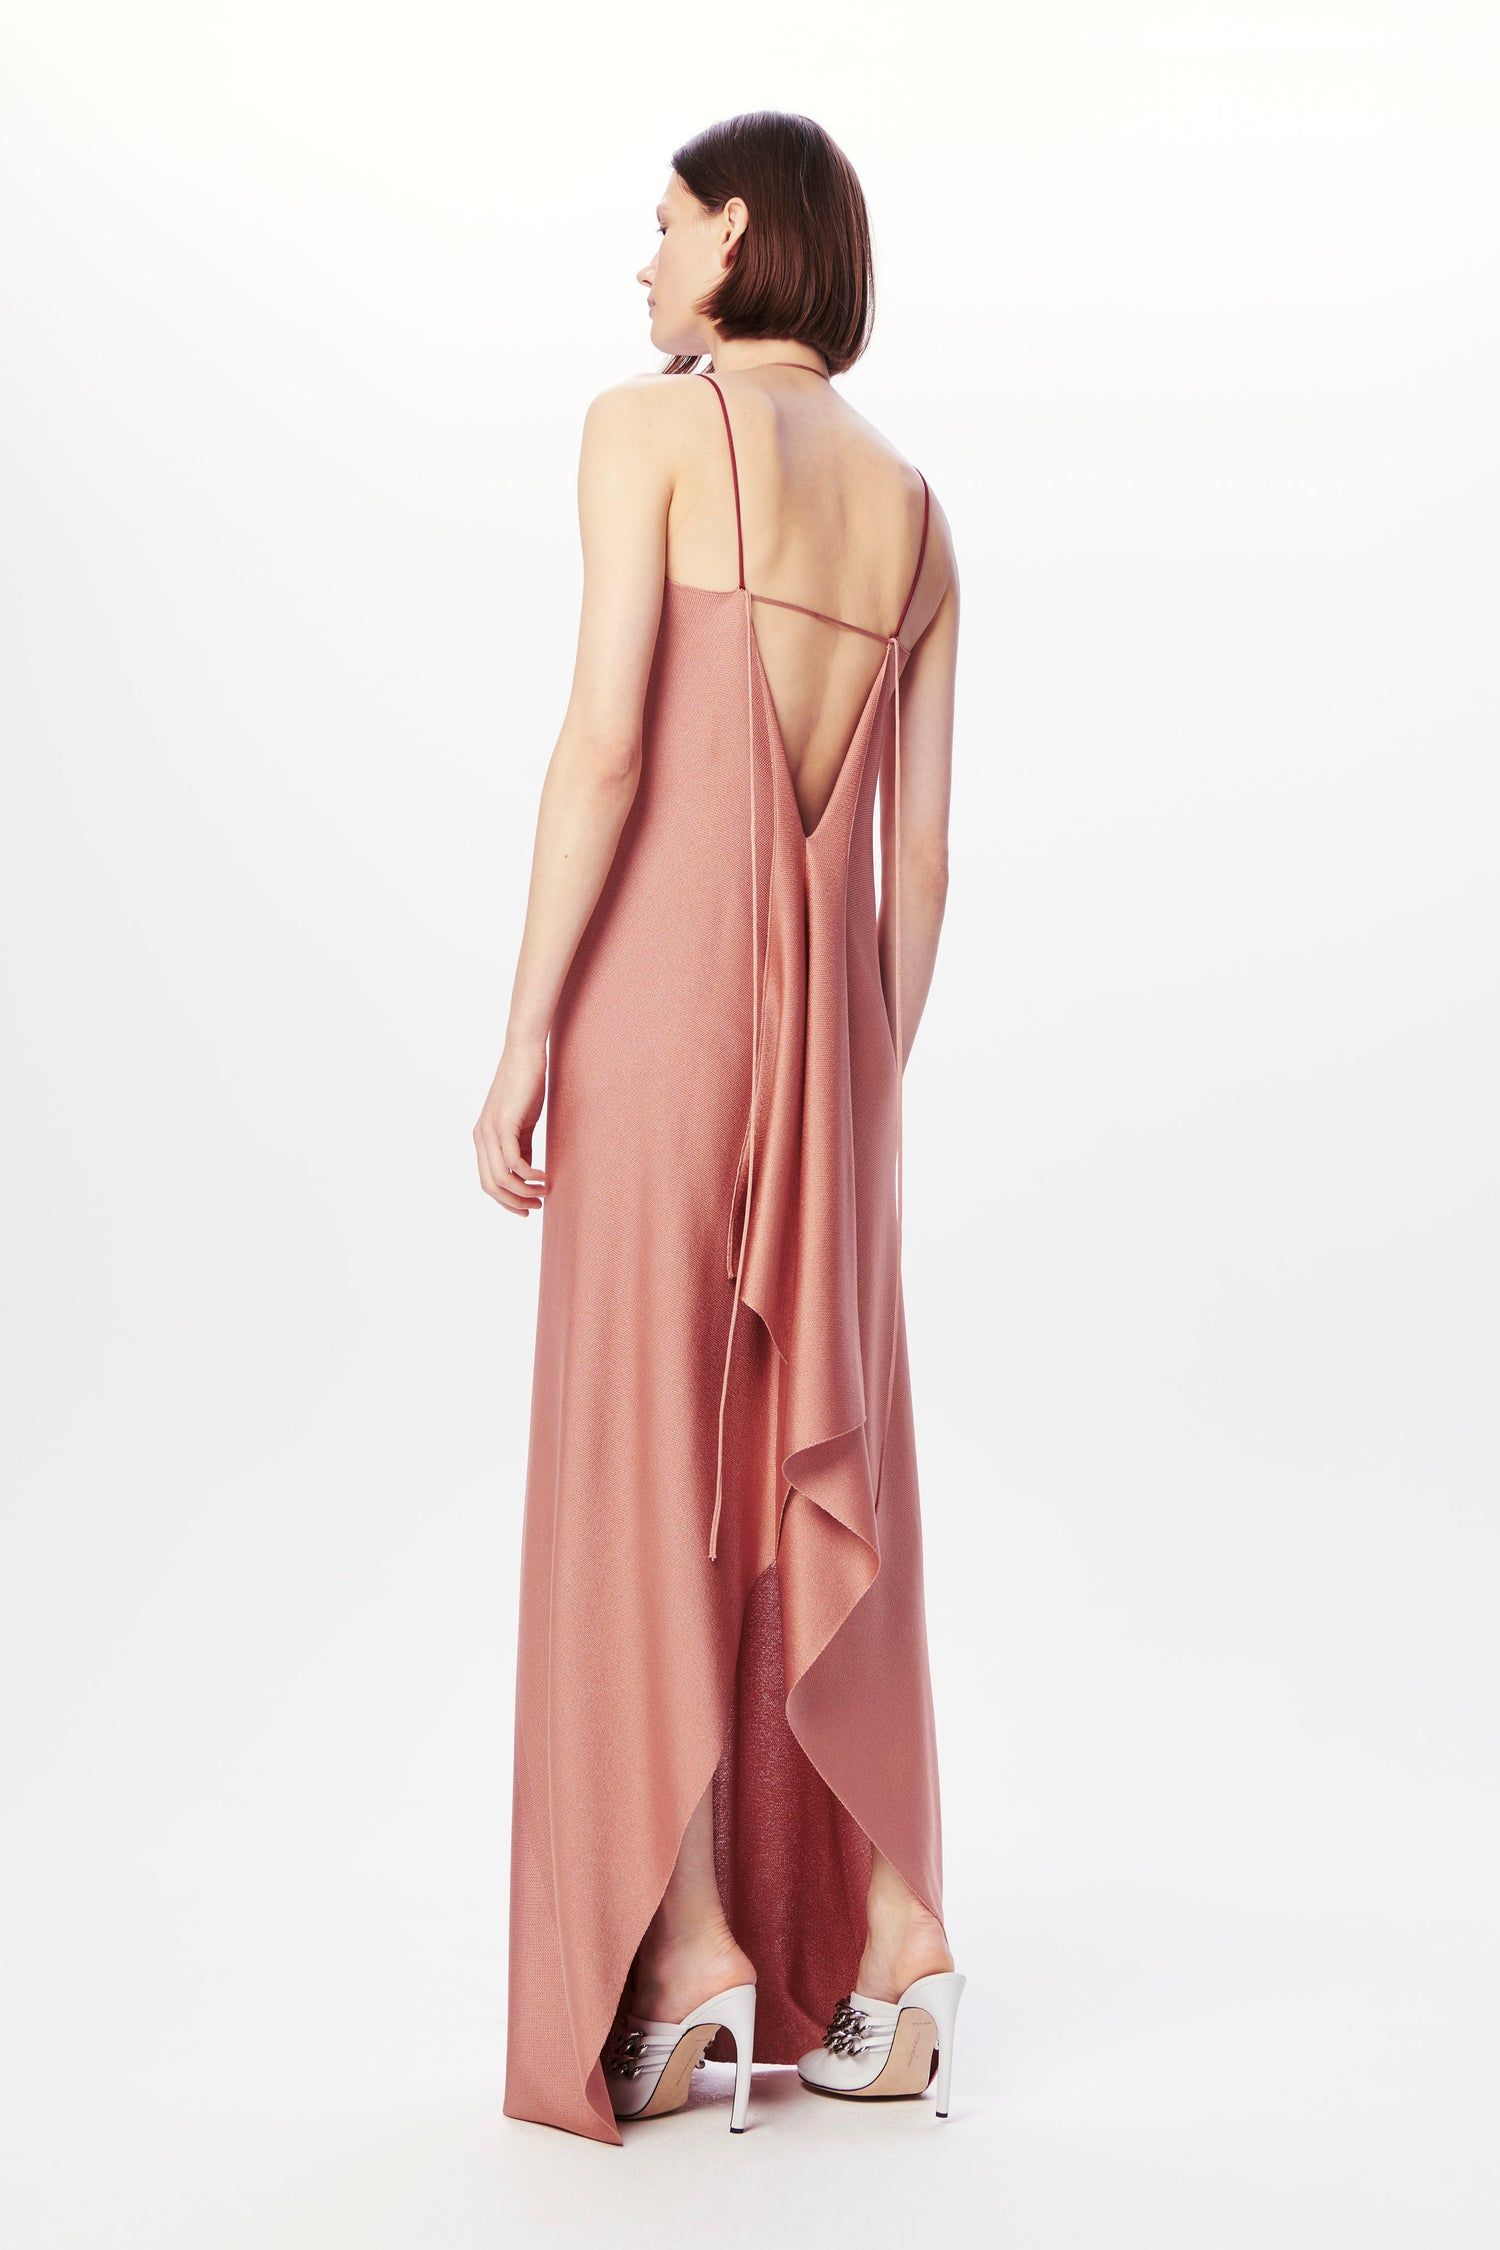 Ruched-Neck Dress in Rose Nude